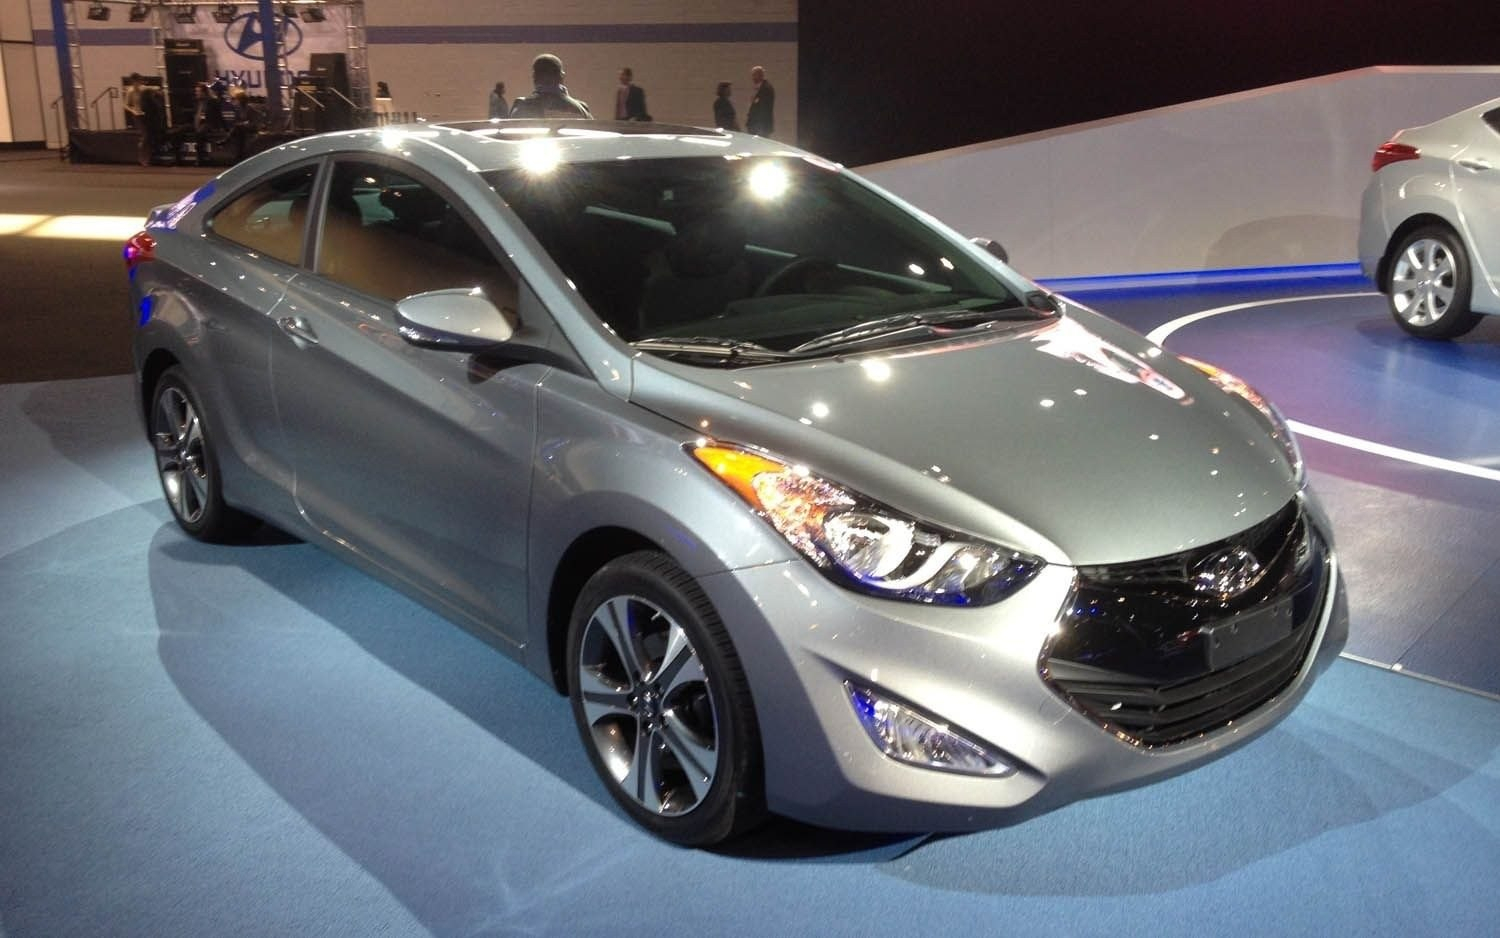 98 The Best 2020 Hyundai Elantra Sedan New Concept